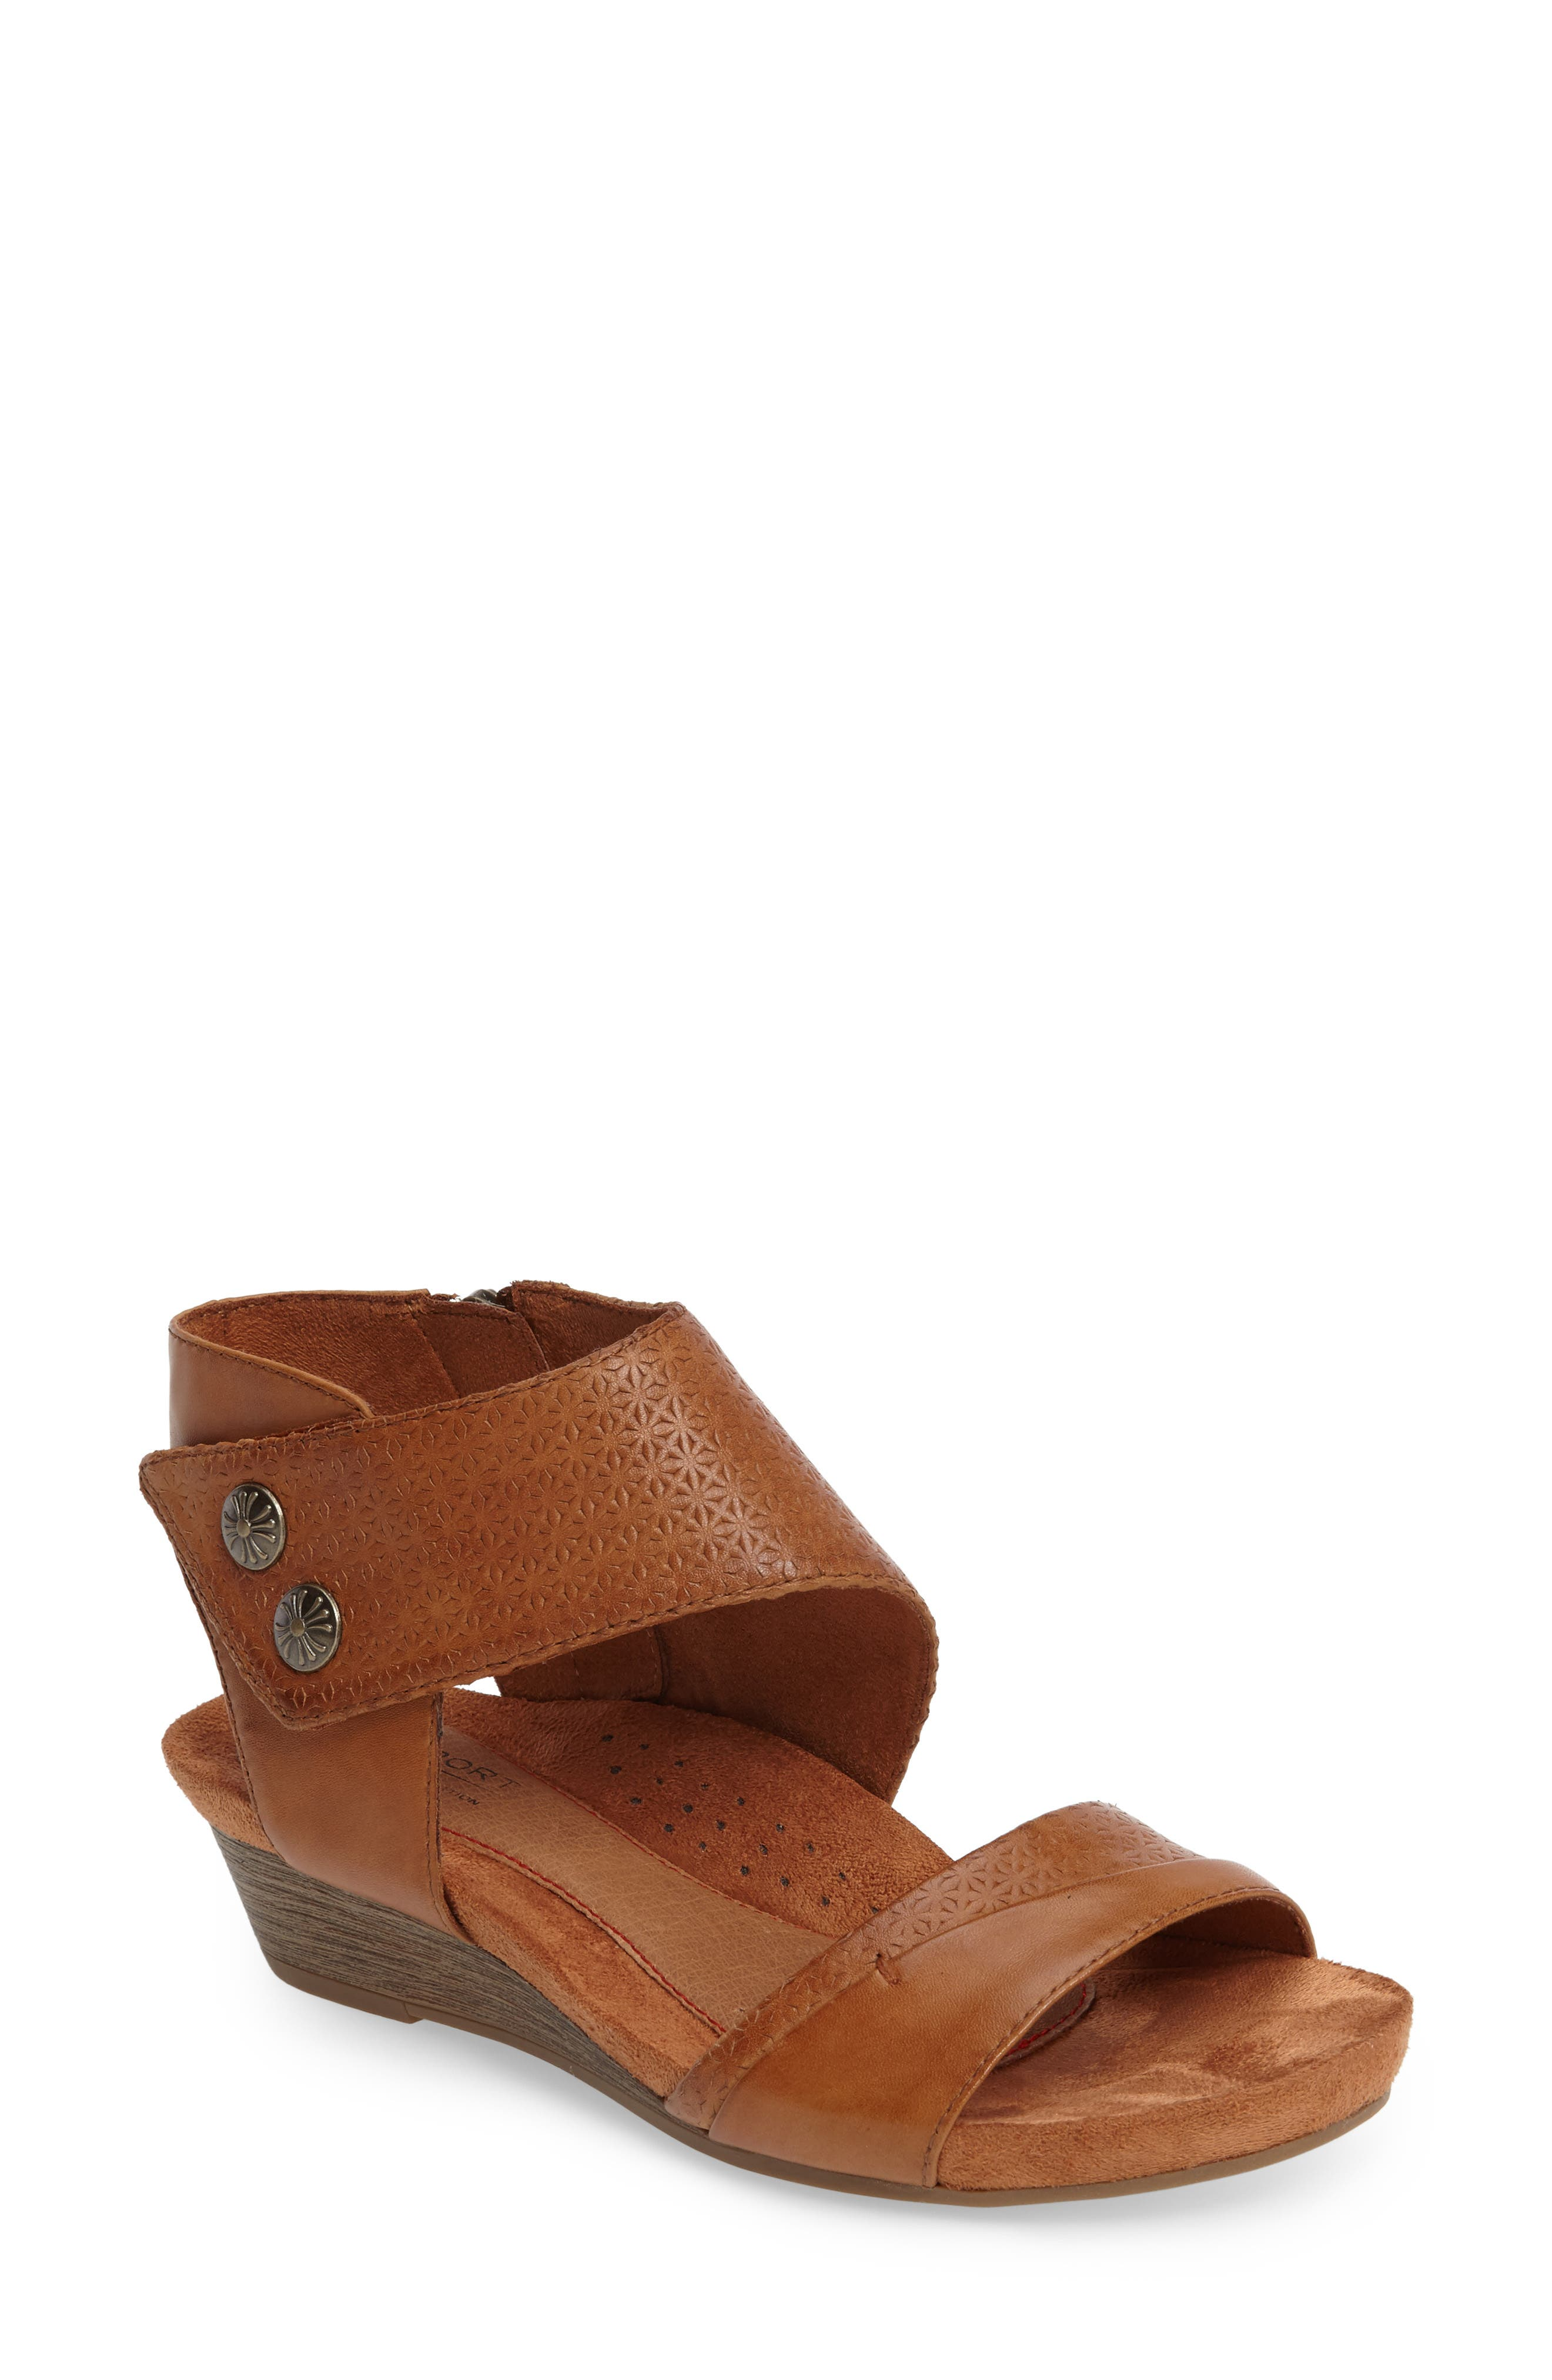 Hollywood Sandal,                         Main,                         color, TAN LEATHER